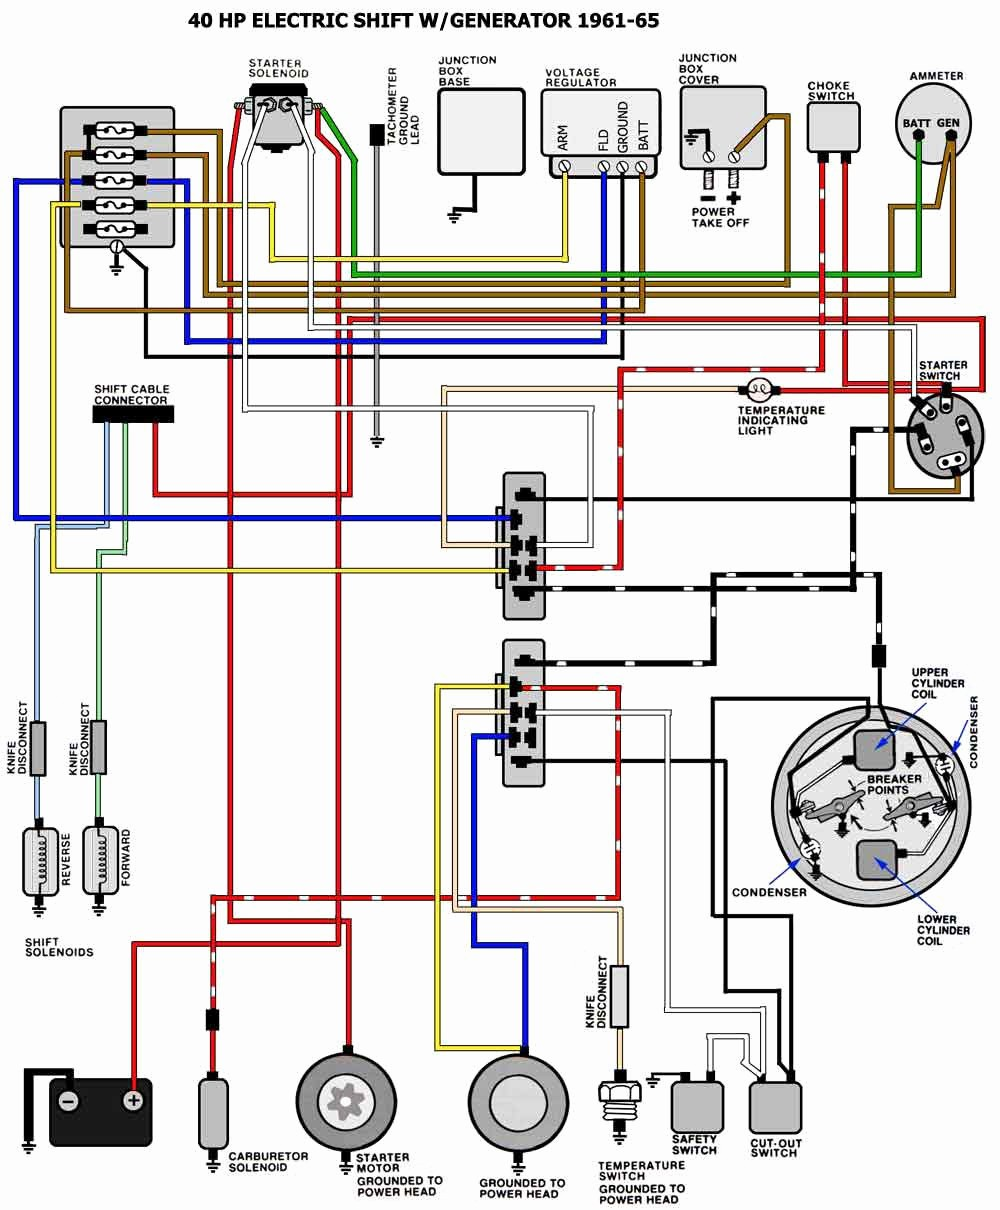 wiring diagrams besides yamaha outboard wiring harness diagram as rh  linewired co